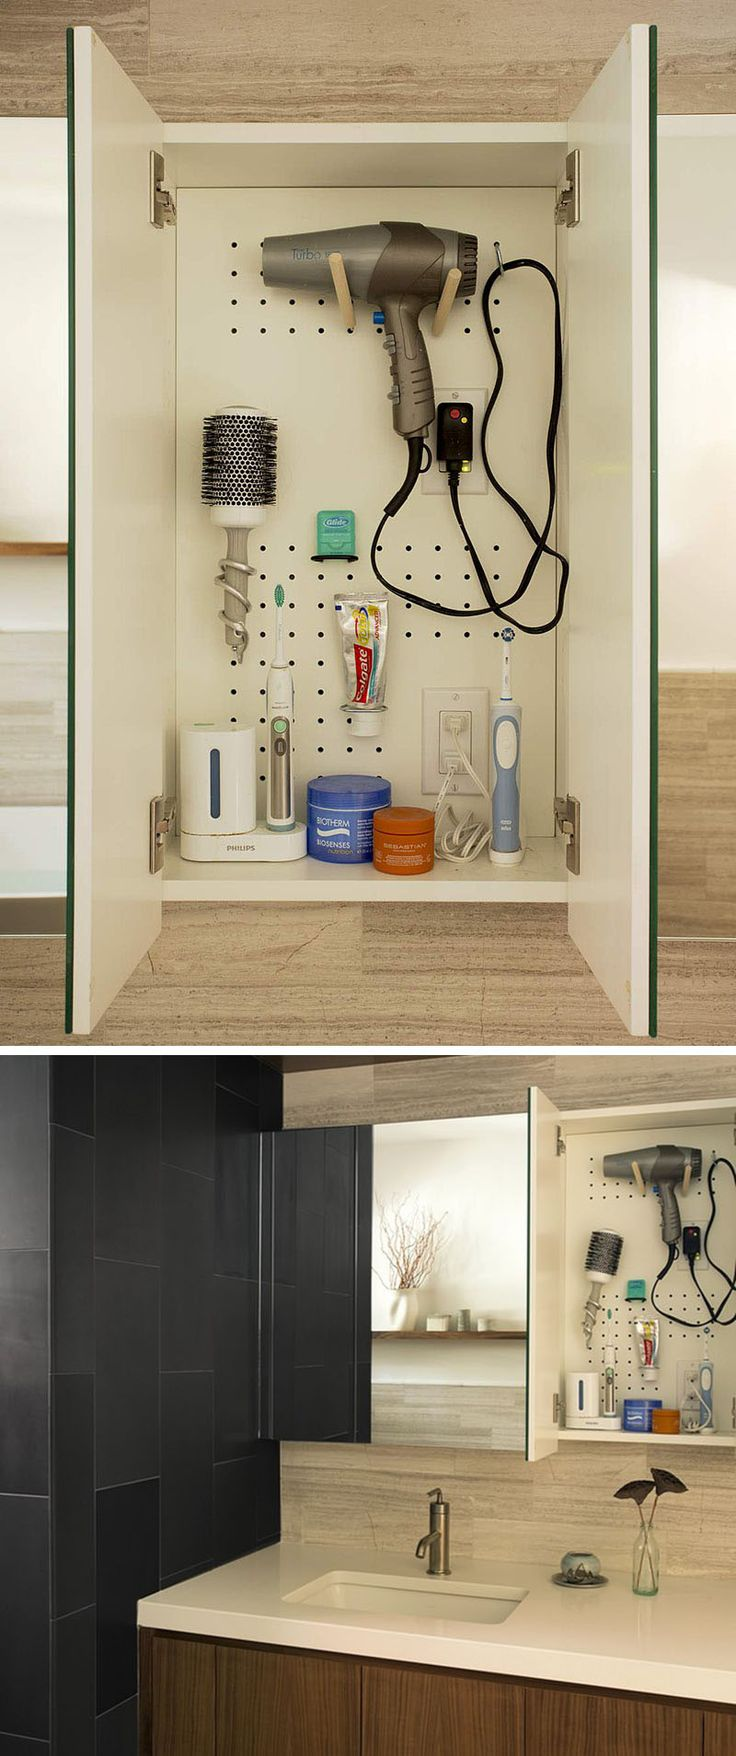 Diy hot hair tool storage remodelaholic com haircarestorage - 7 Bathroom Storage Ideas For Hair Tools Pegboard Cabinetry Installing A